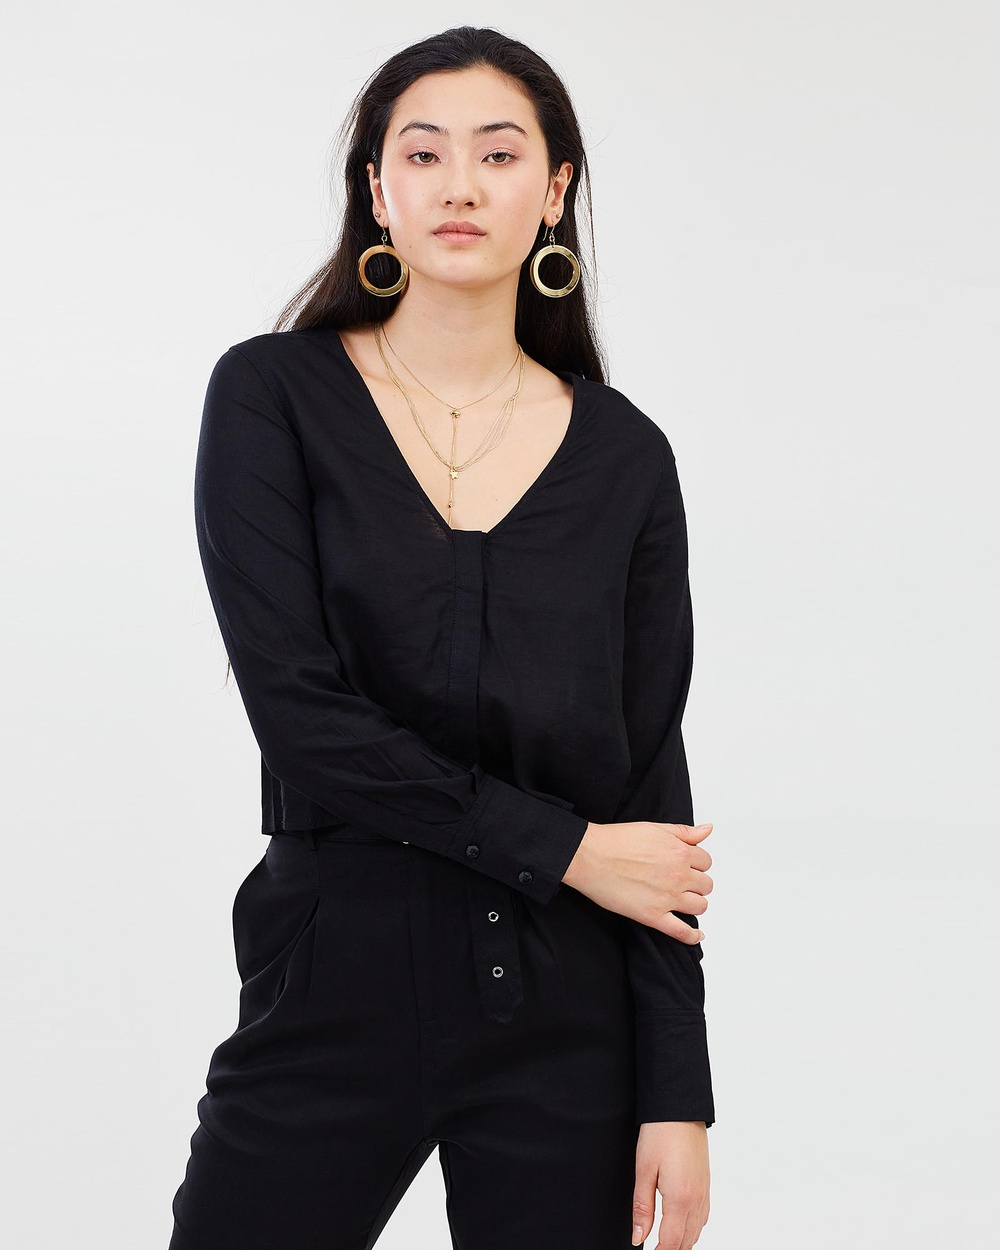 Third Form Concealed V Neck Shirt Tops Black Concealed V-Neck Shirt